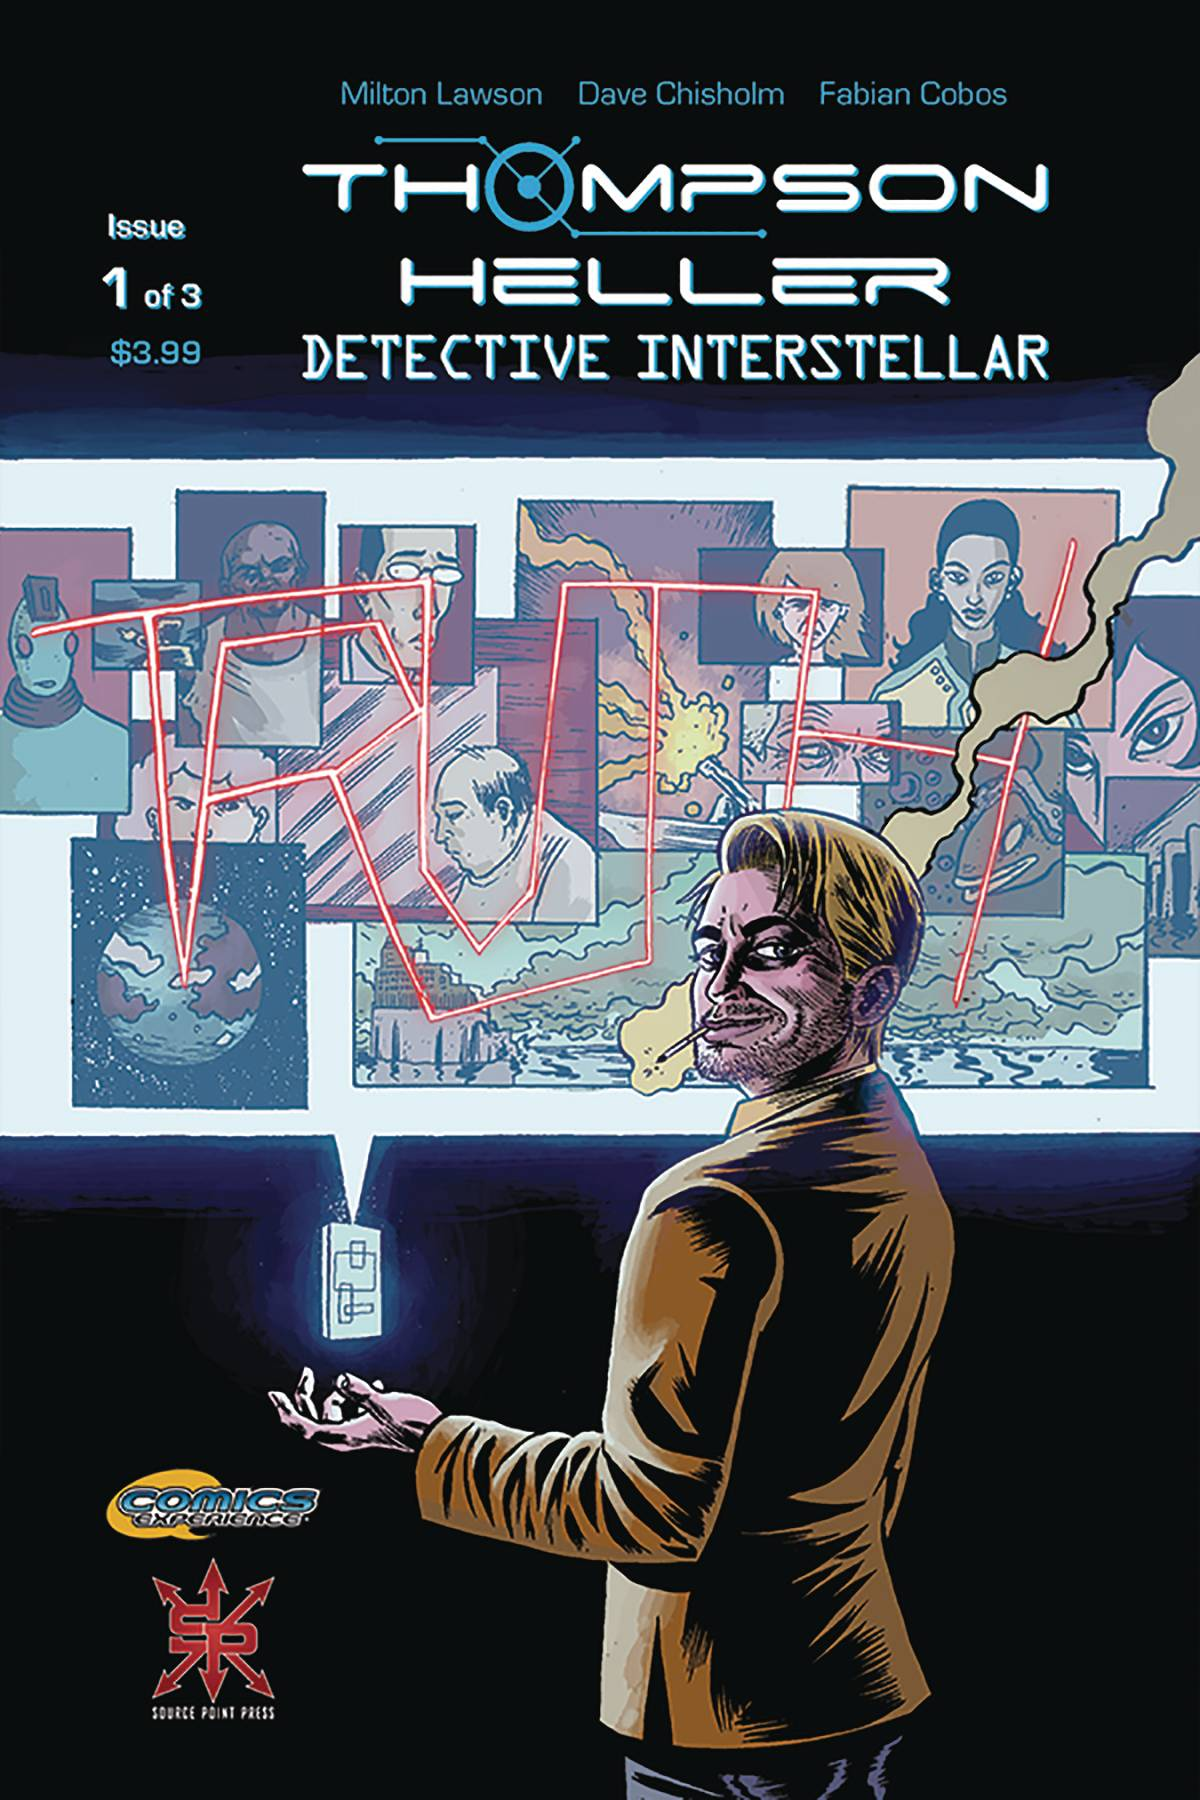 THOMPSON HELLER DETECTIVE INTERSTELLAR #1 (OF 3)